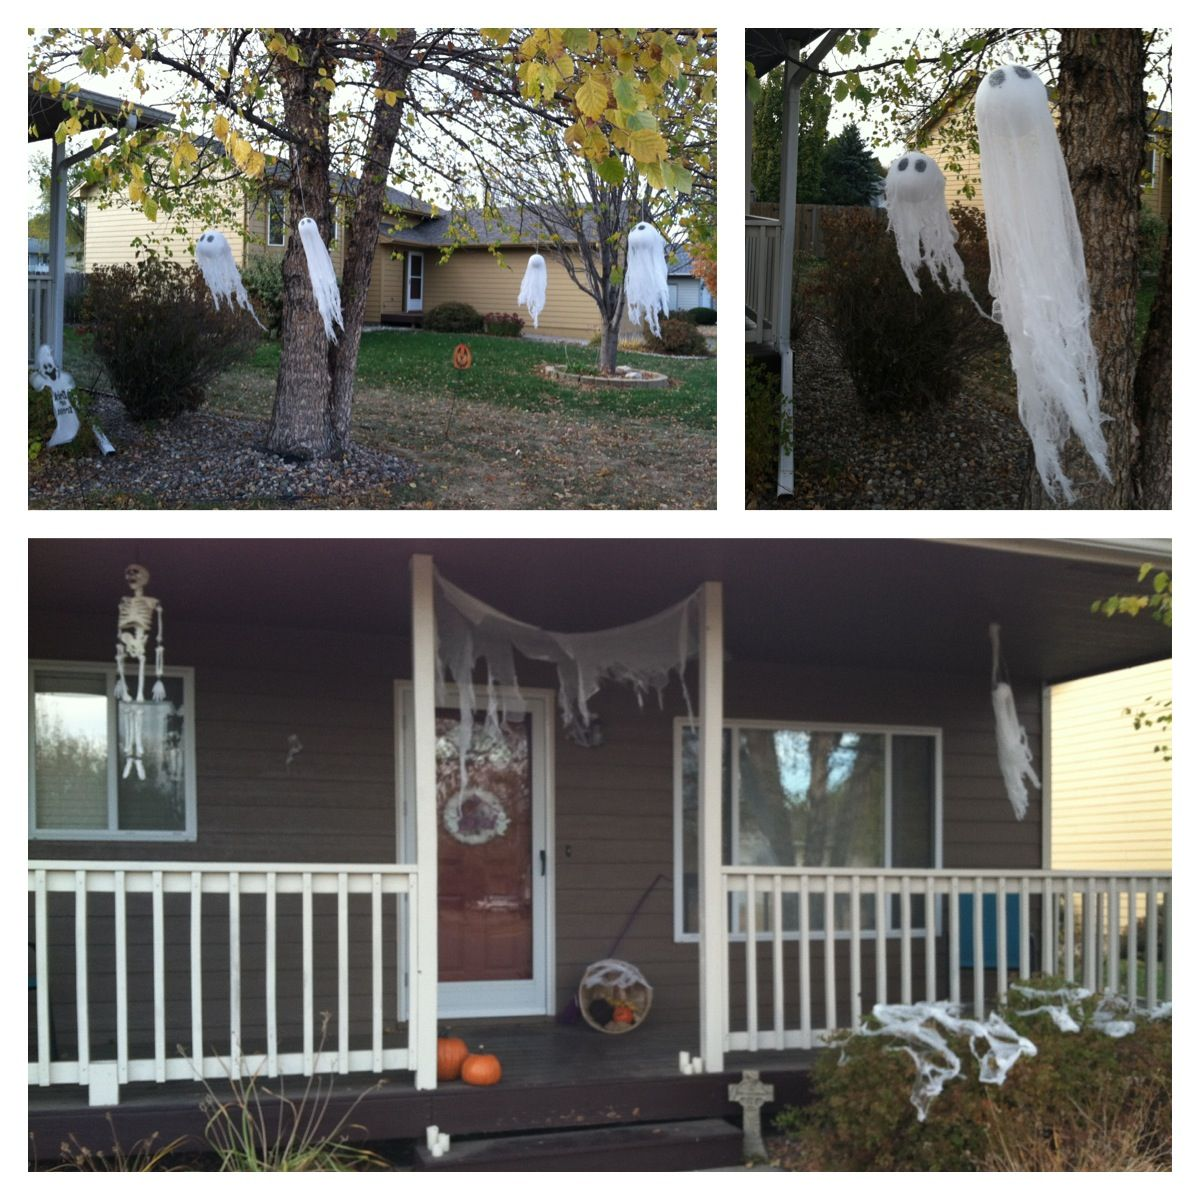 Halloween decor outside my house! Turning our House into a Home - Halloween House Decorating Ideas Outside